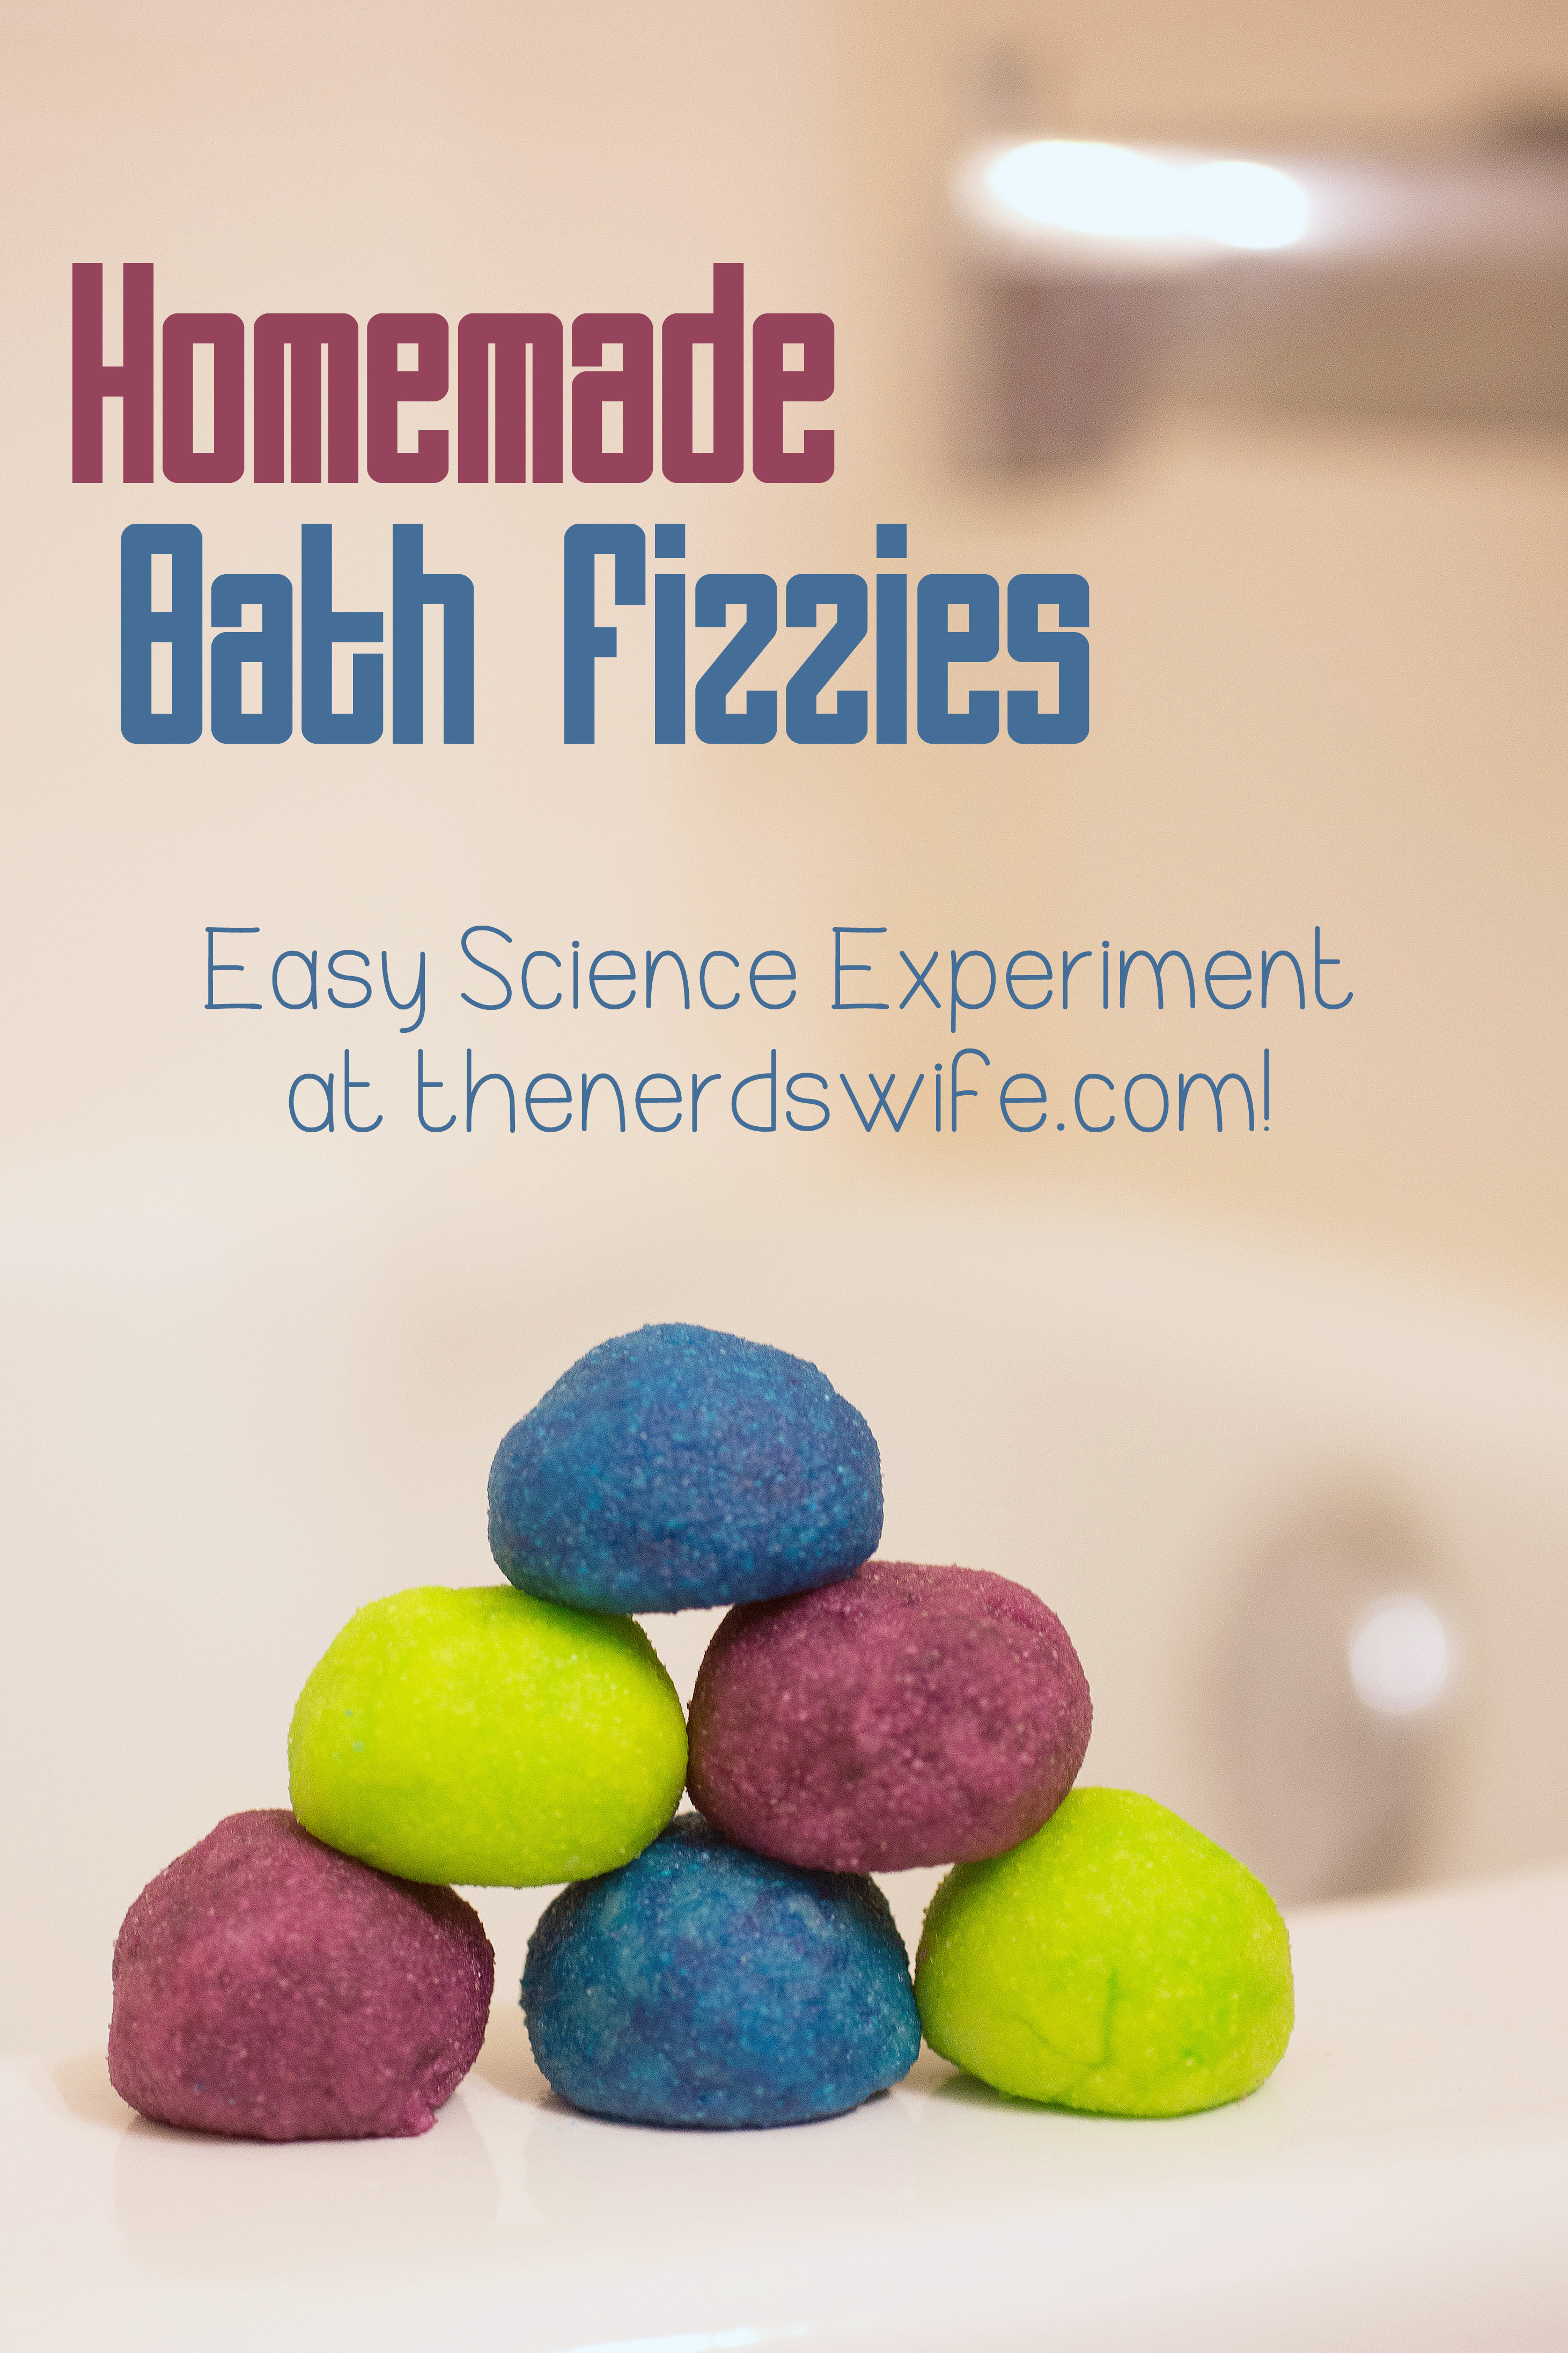 Best ideas about DIY Bath Bombs For Kids . Save or Pin Homemade Bath Fizzies Science Experiment with Netflix Now.